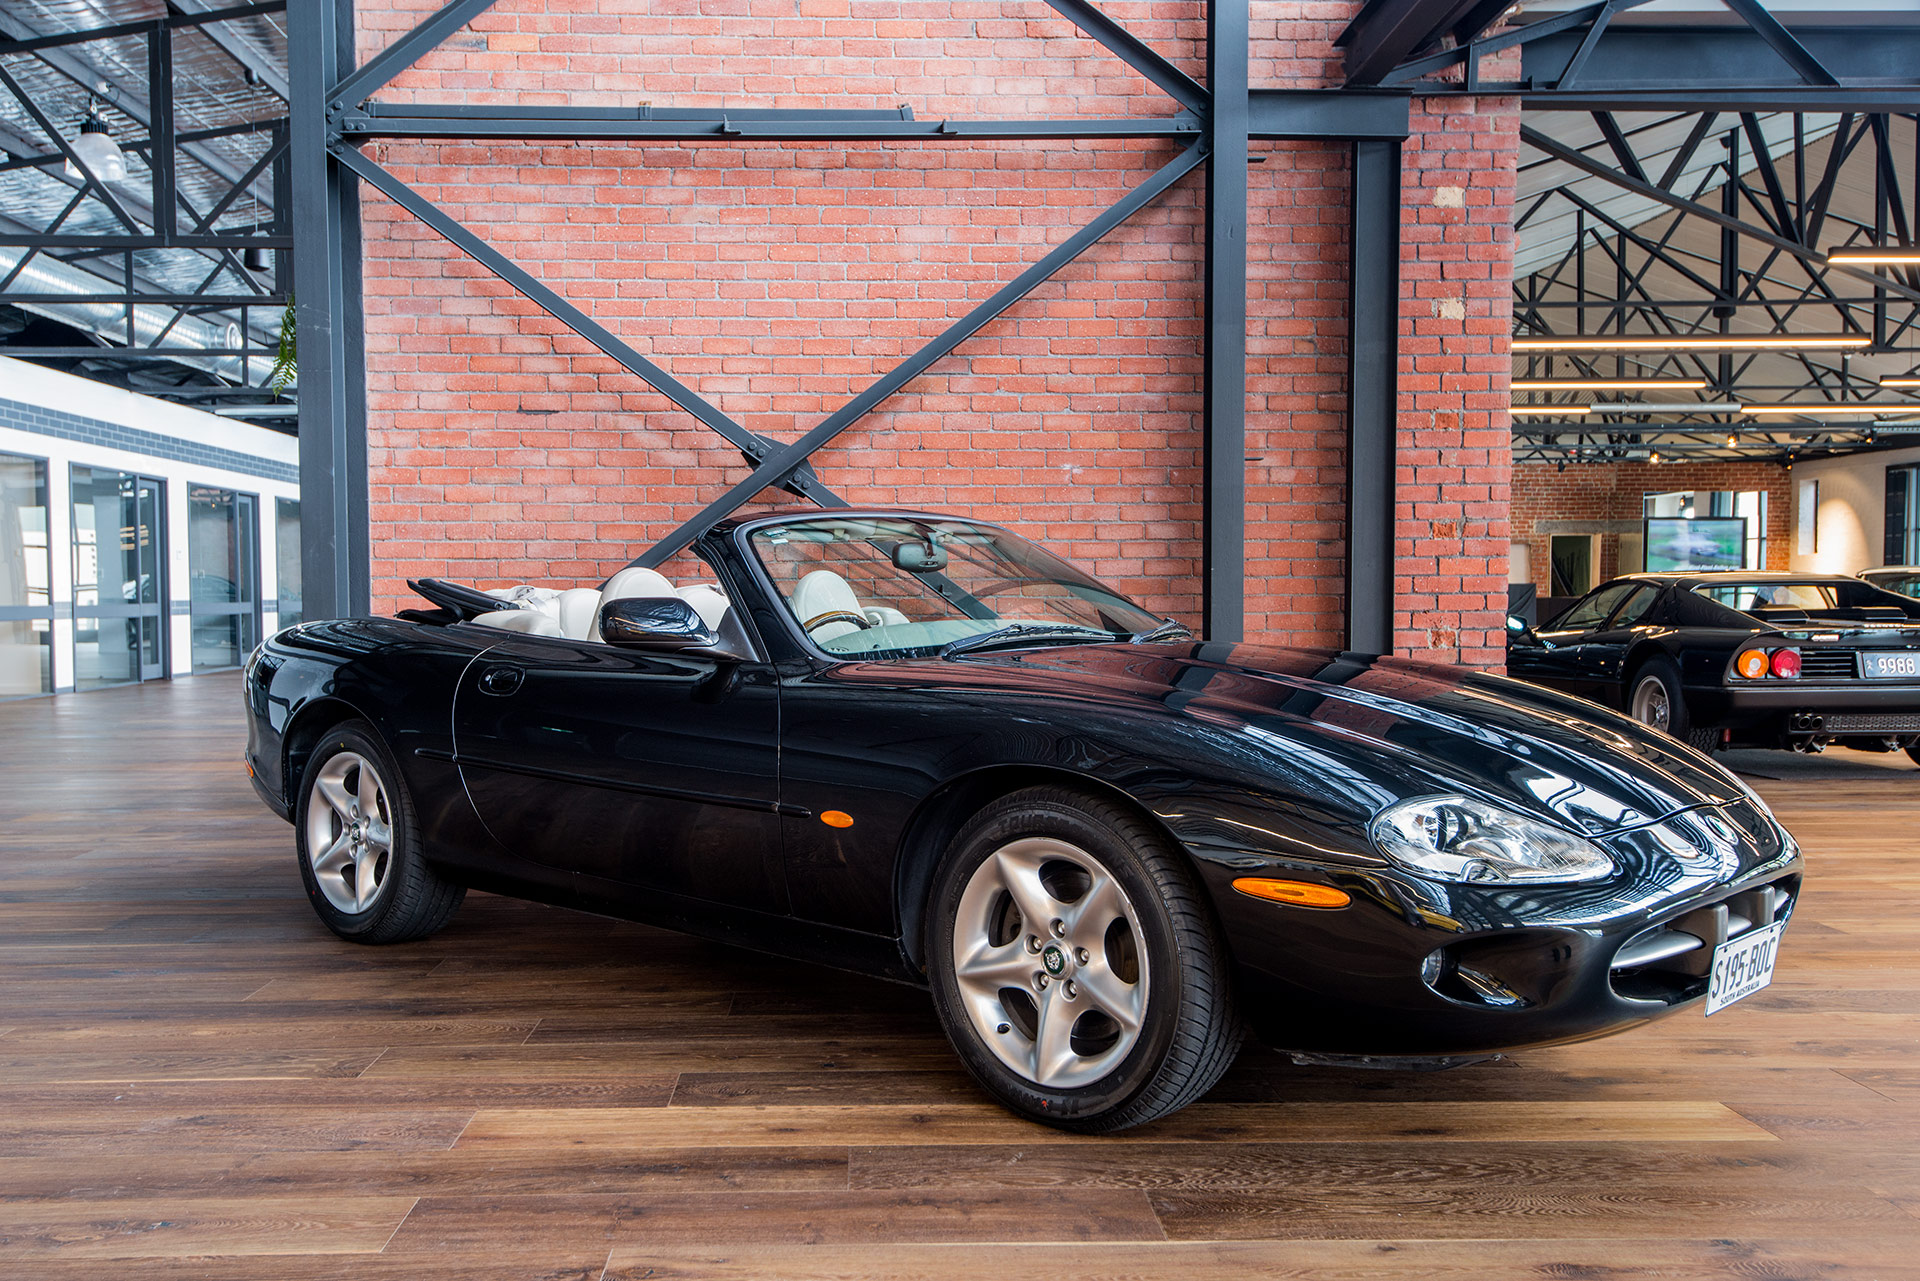 2000 jaguar xk8 convertible richmonds classic sports cars adelaide sa. Black Bedroom Furniture Sets. Home Design Ideas